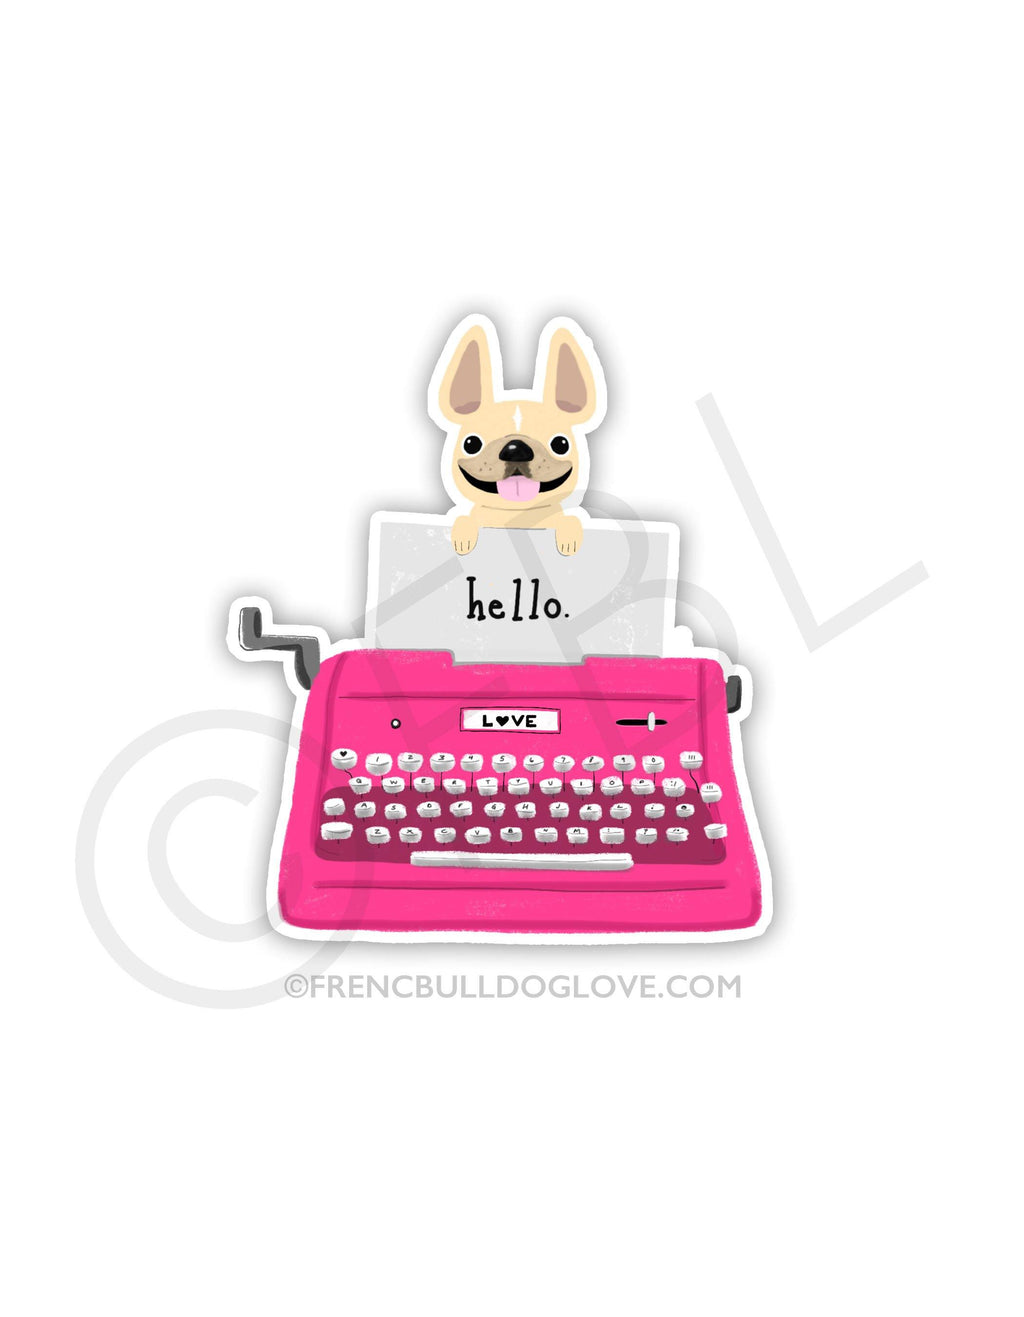 #100DAYPROJECT 43/100 - TYPEWRITER VINYL FRENCH BULLDOG STICKER